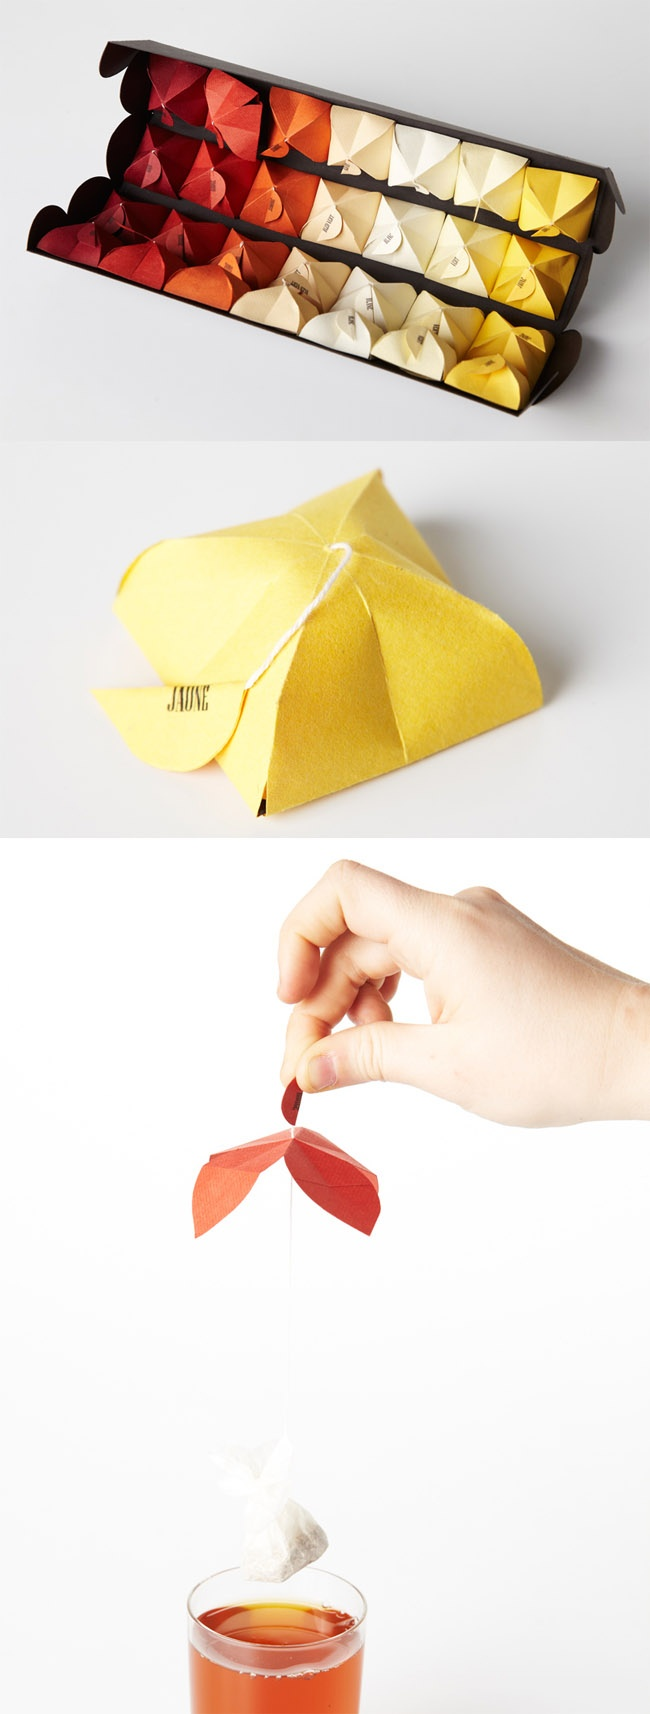 Origami Tea Packaging /  Maria Milagros Rodriguez Bouroncle